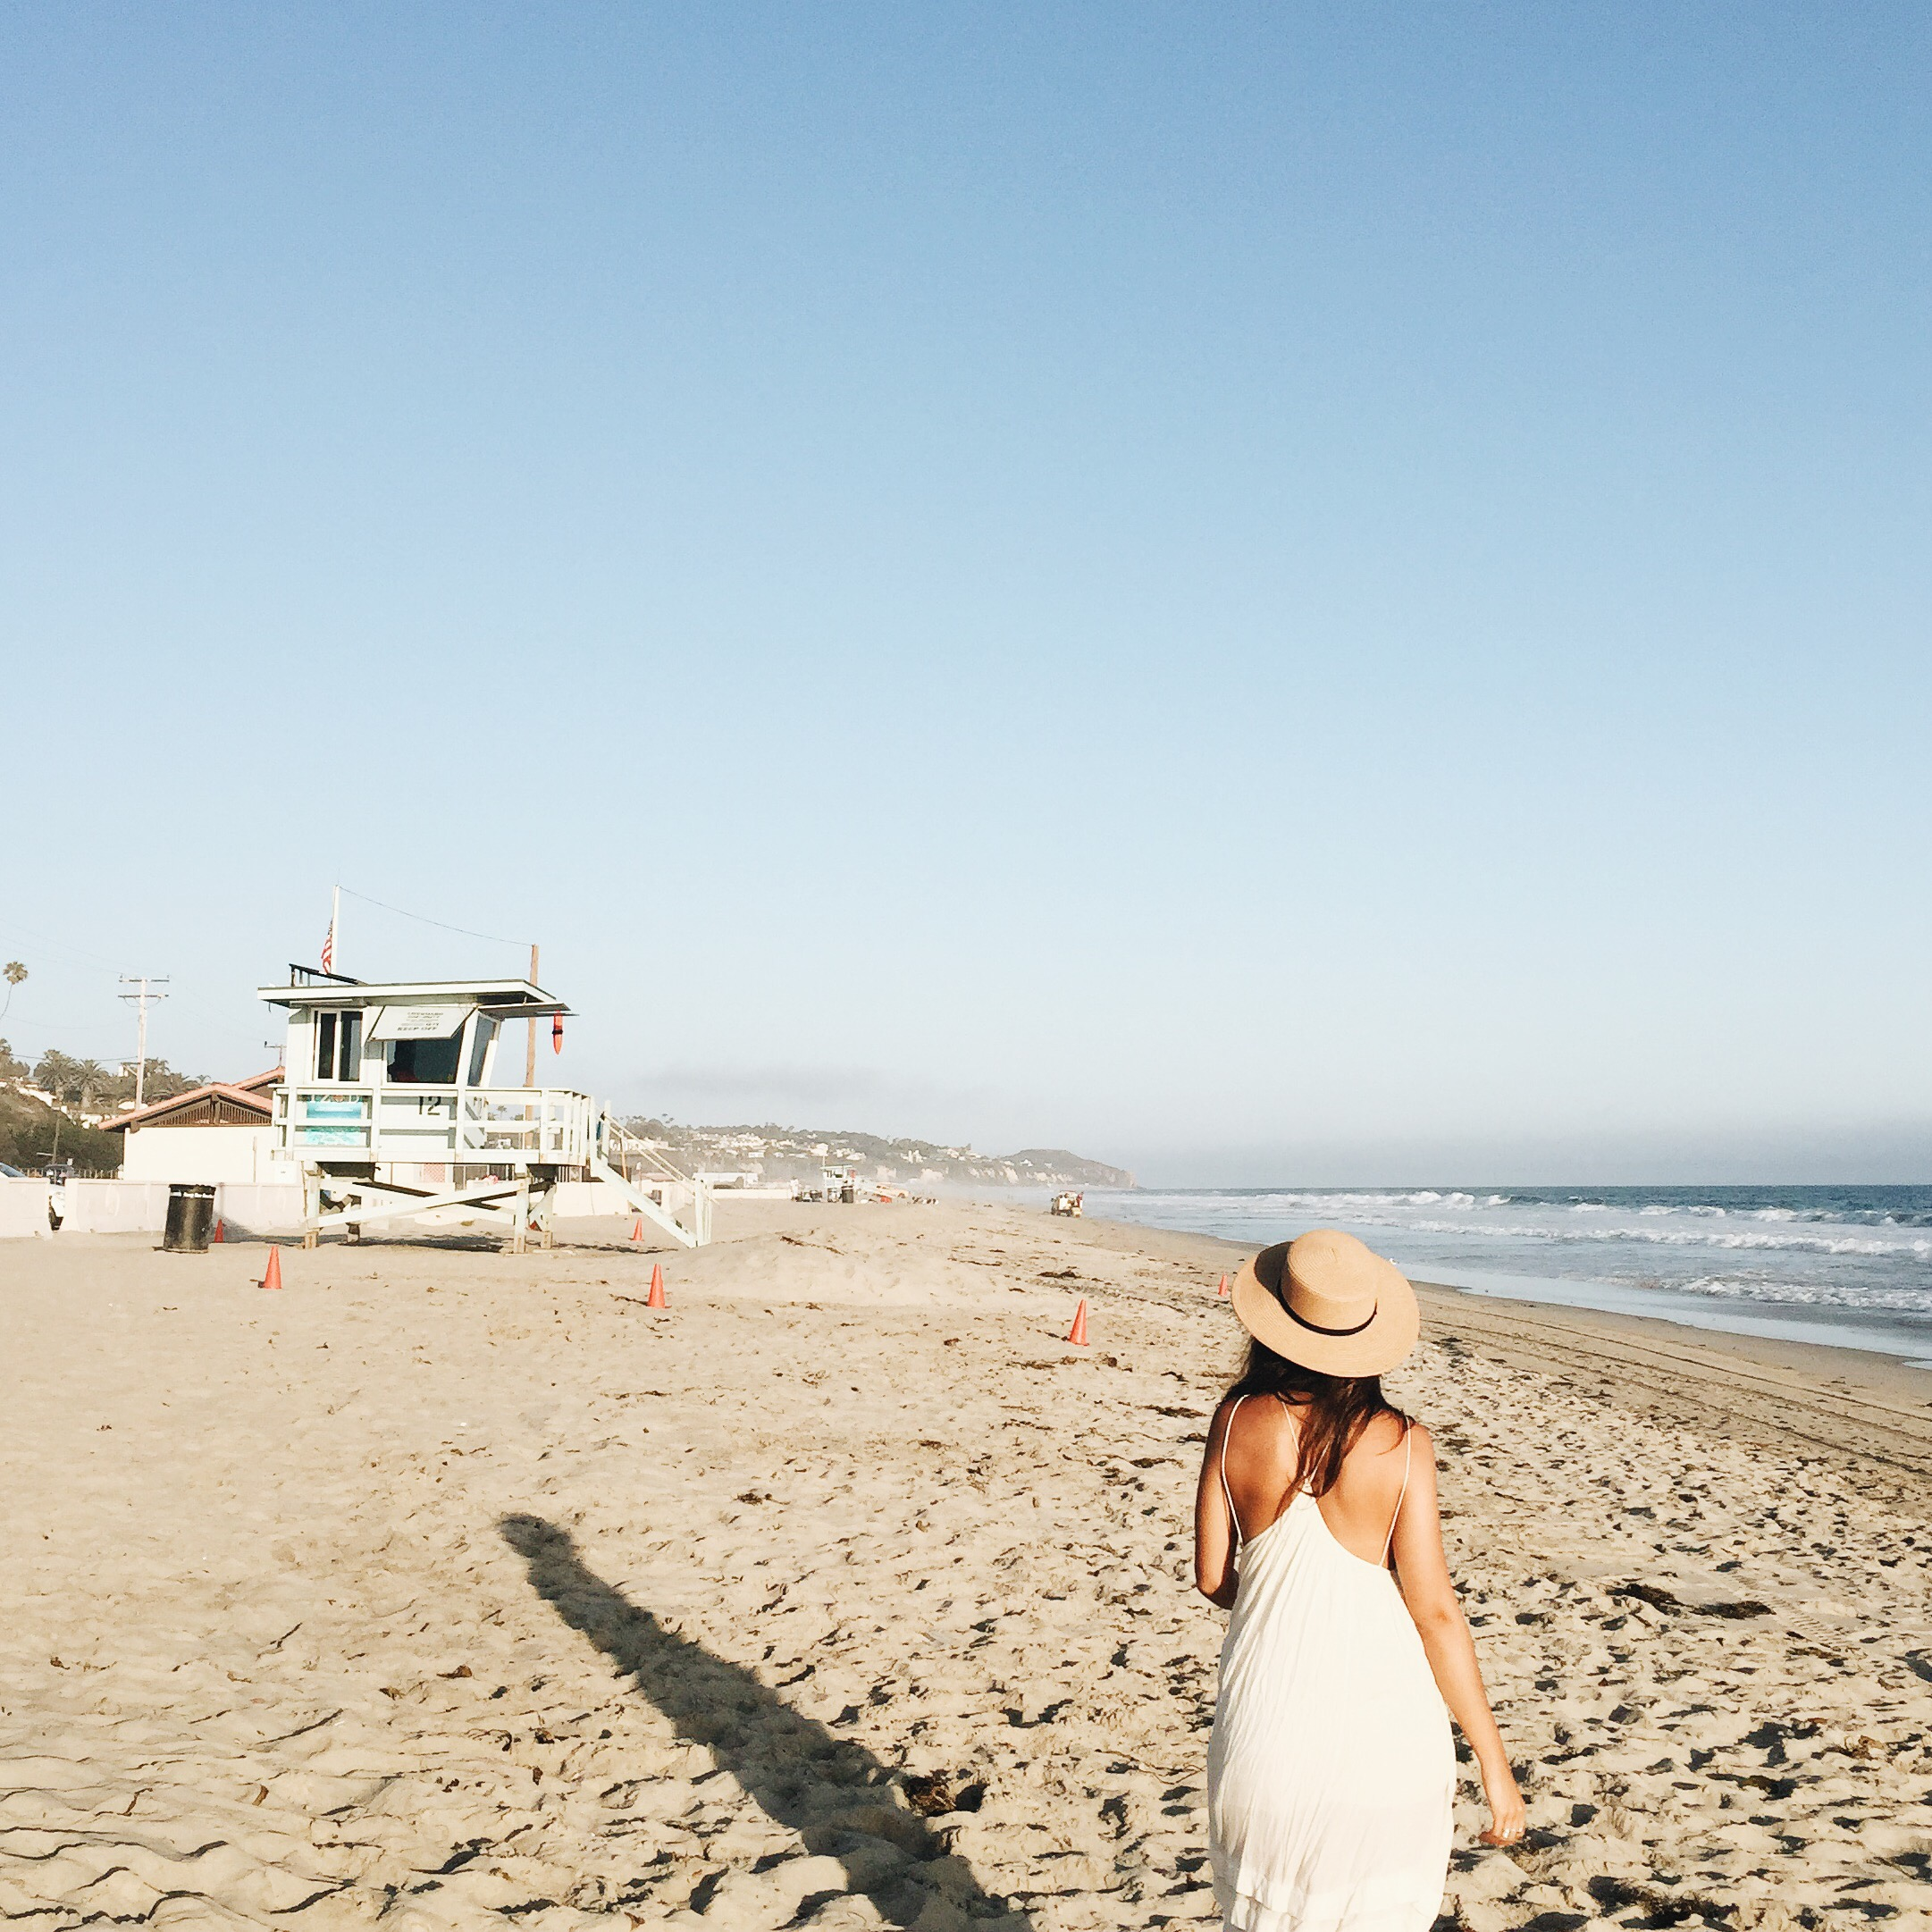 Zuma Beach in Malibu, CA  - elanaloo.com